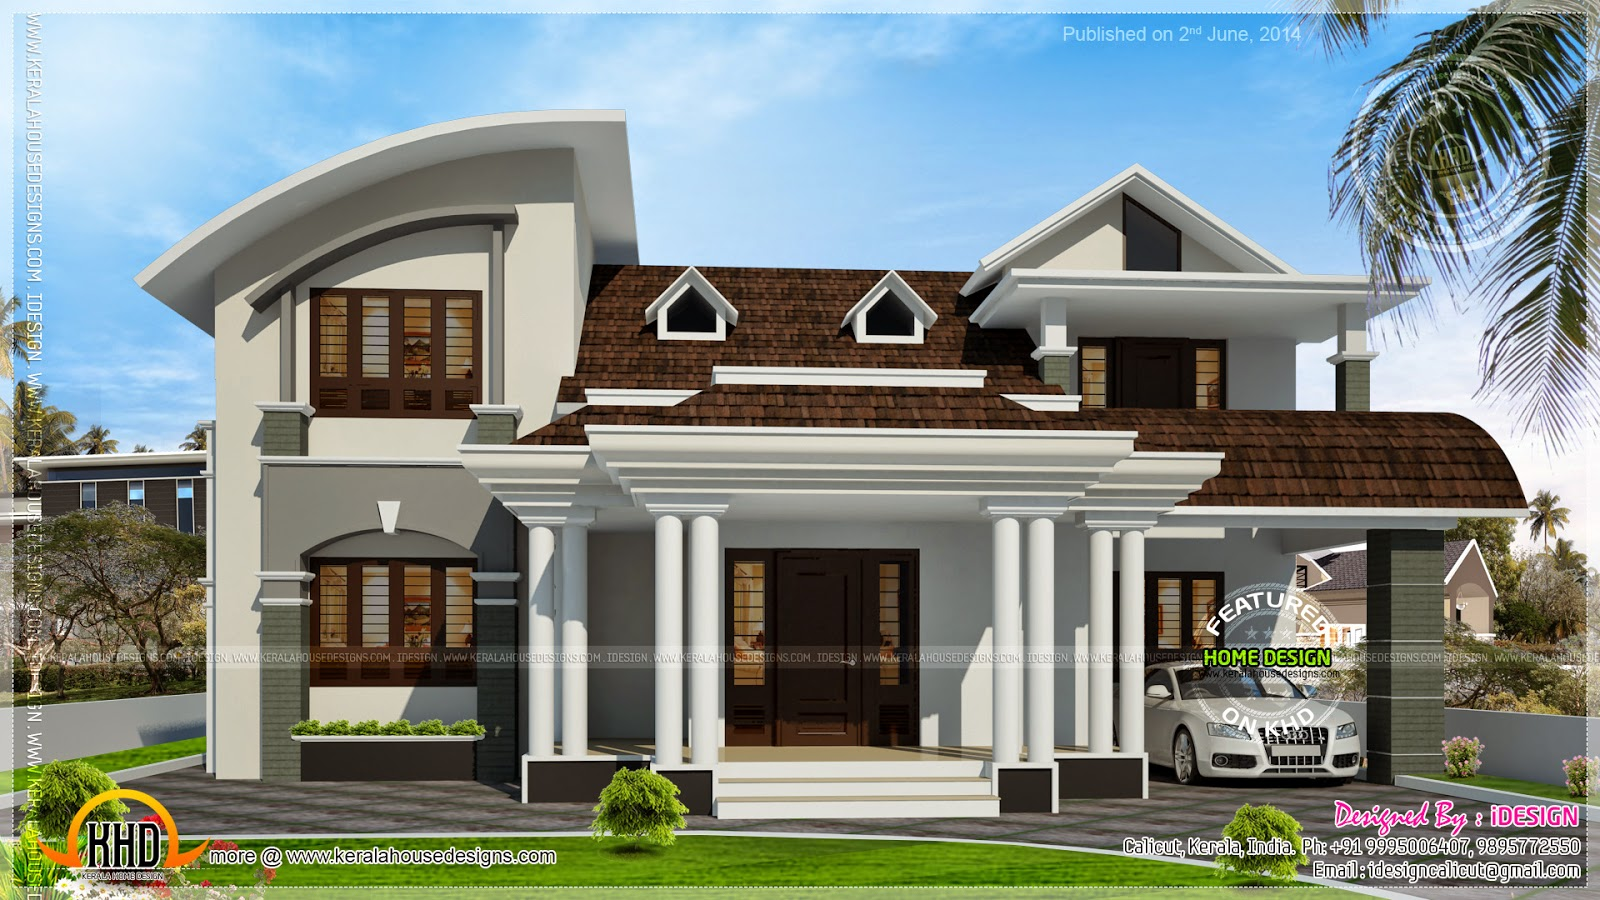 Siddu buzz online kerala home design for Home window design pictures